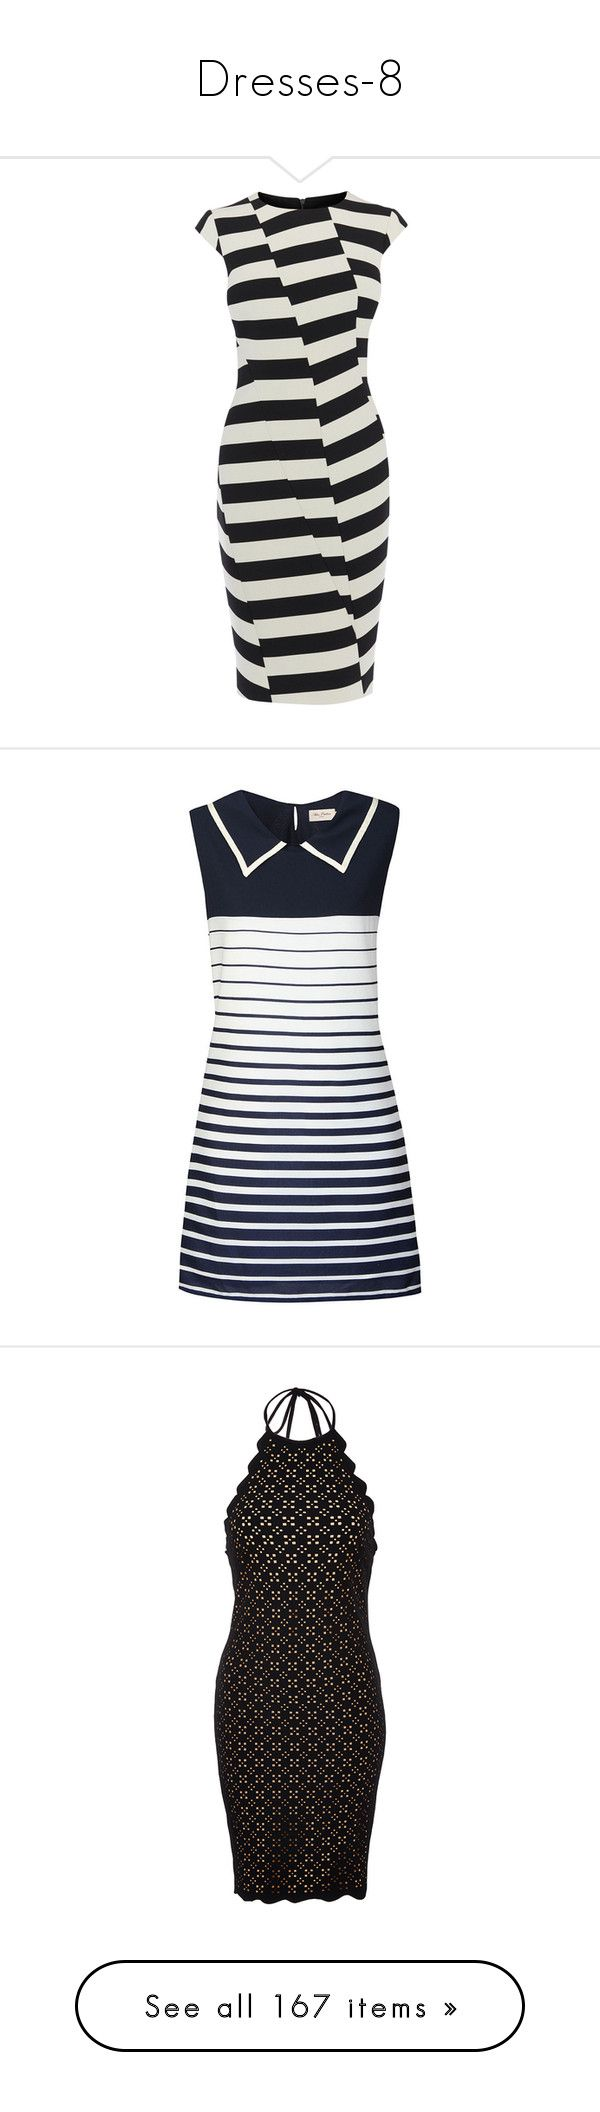 """""""Dresses-8"""" by missy-smallen ❤ liked on Polyvore featuring dresses, cap sleeve dress, maxi dress, mini dress, long-sleeve midi dresses, sleeve maxi dress, vestidos, navy nautical dress, nautical stripe dress and navy blue striped dress"""